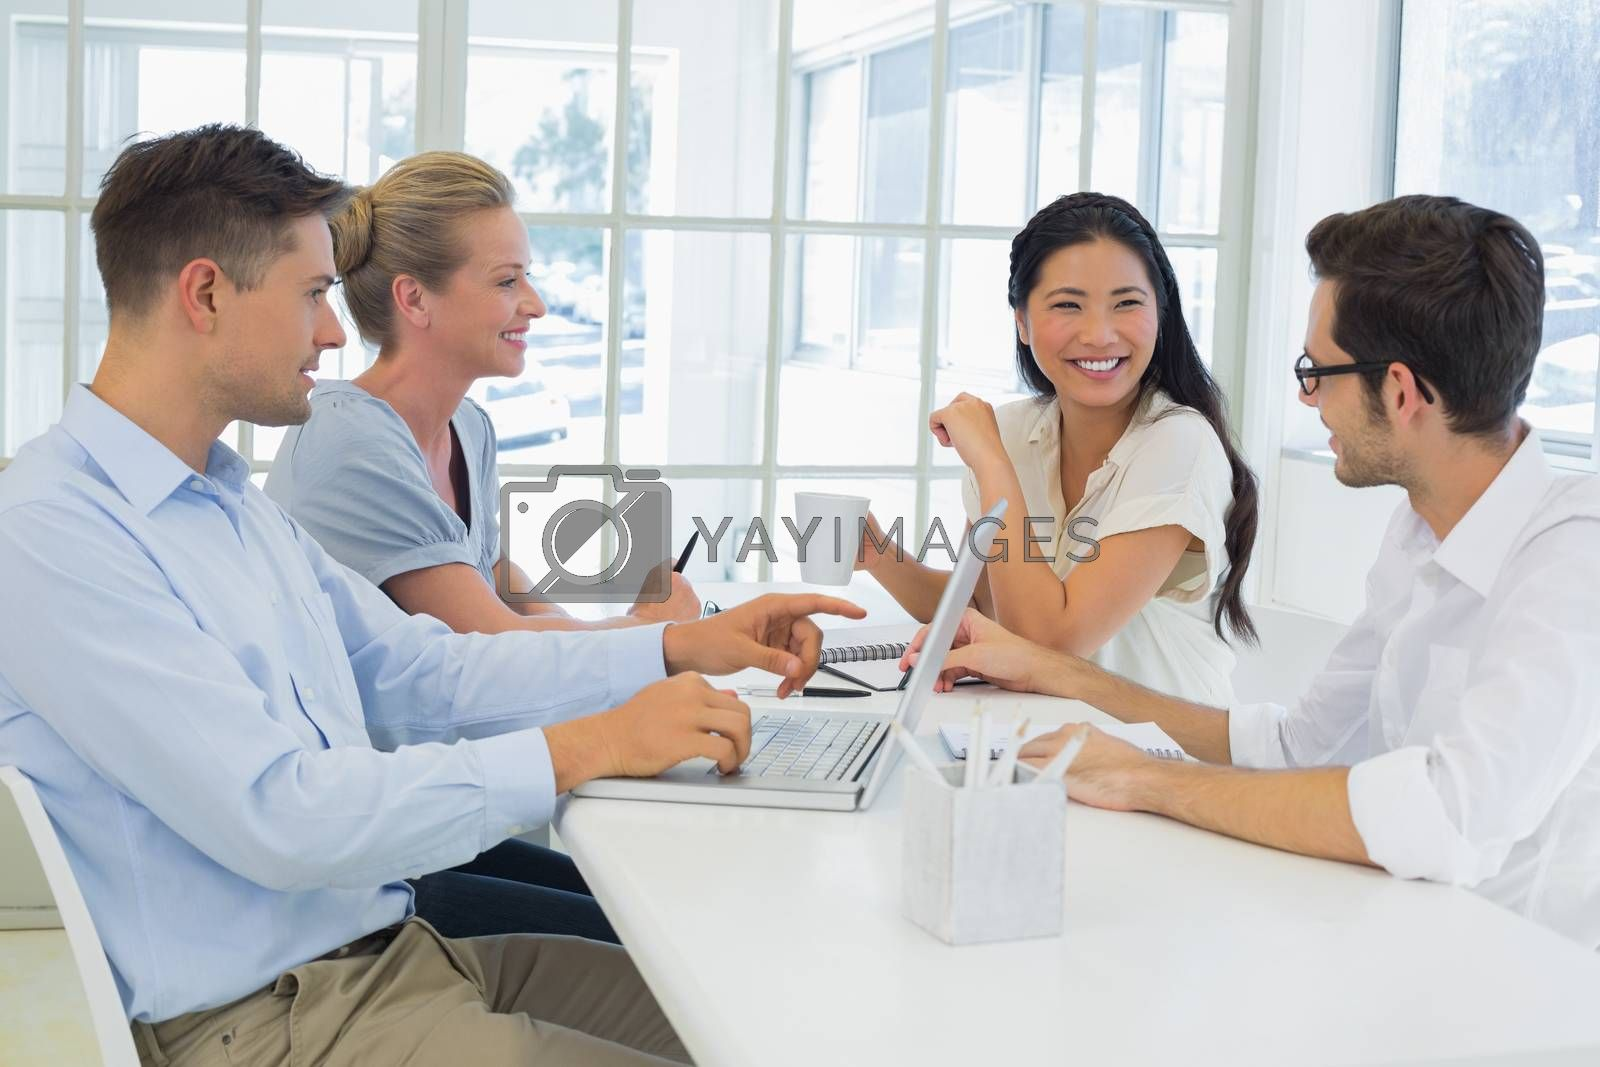 Royalty free image of Casual business team having a meeting by Wavebreakmedia